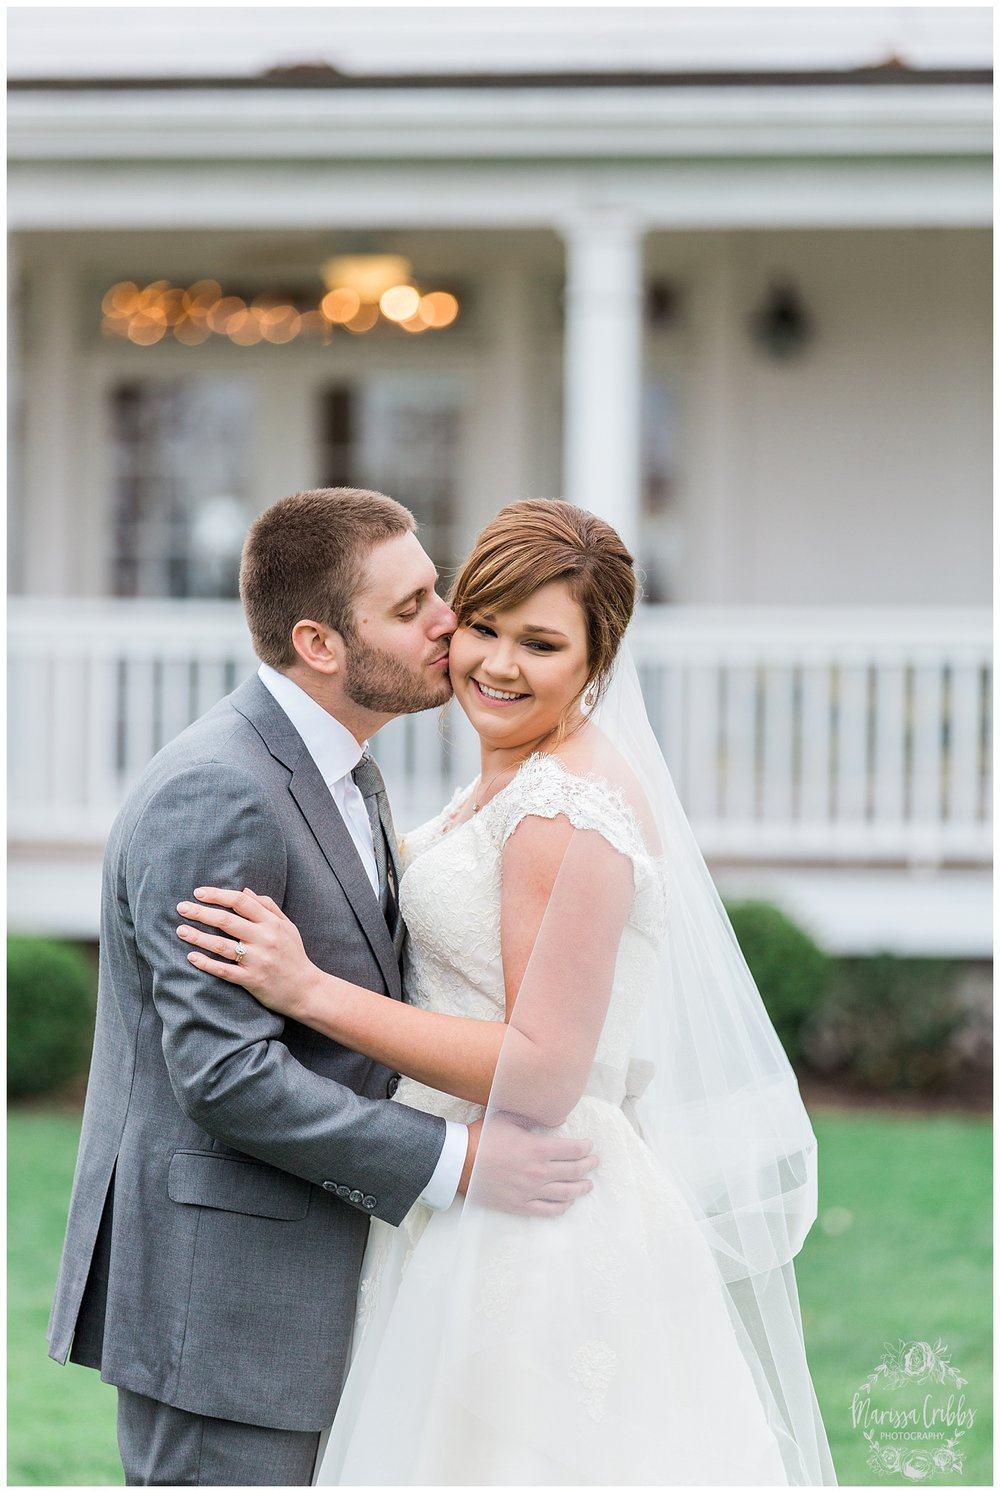 Hawthorne House Wedding | Katie & David | KC Photographers | Marissa Cribbs Photography | KC Wedding Photographers_0732.jpg